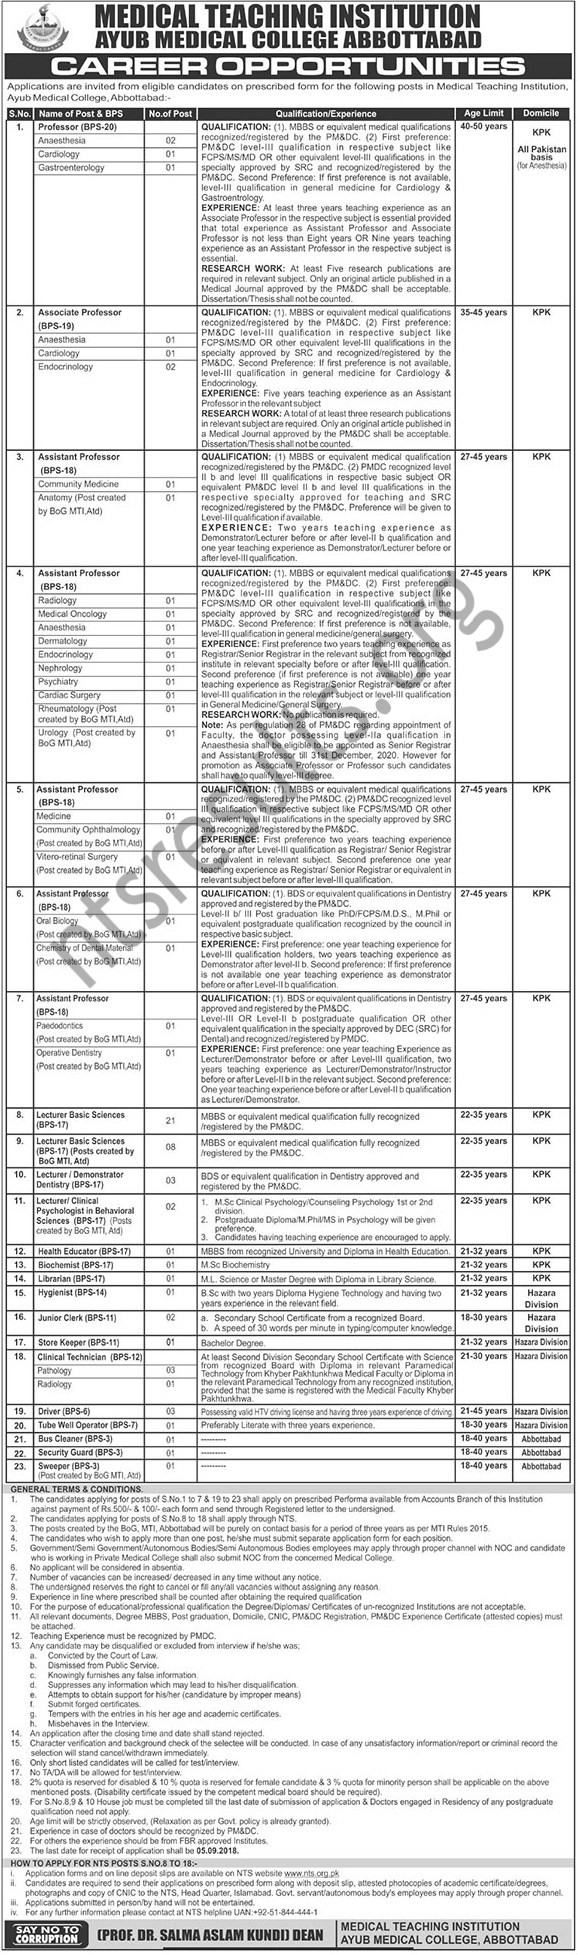 Ayub Medical College Teaching Institution Abbottabad Jobs Via NTS